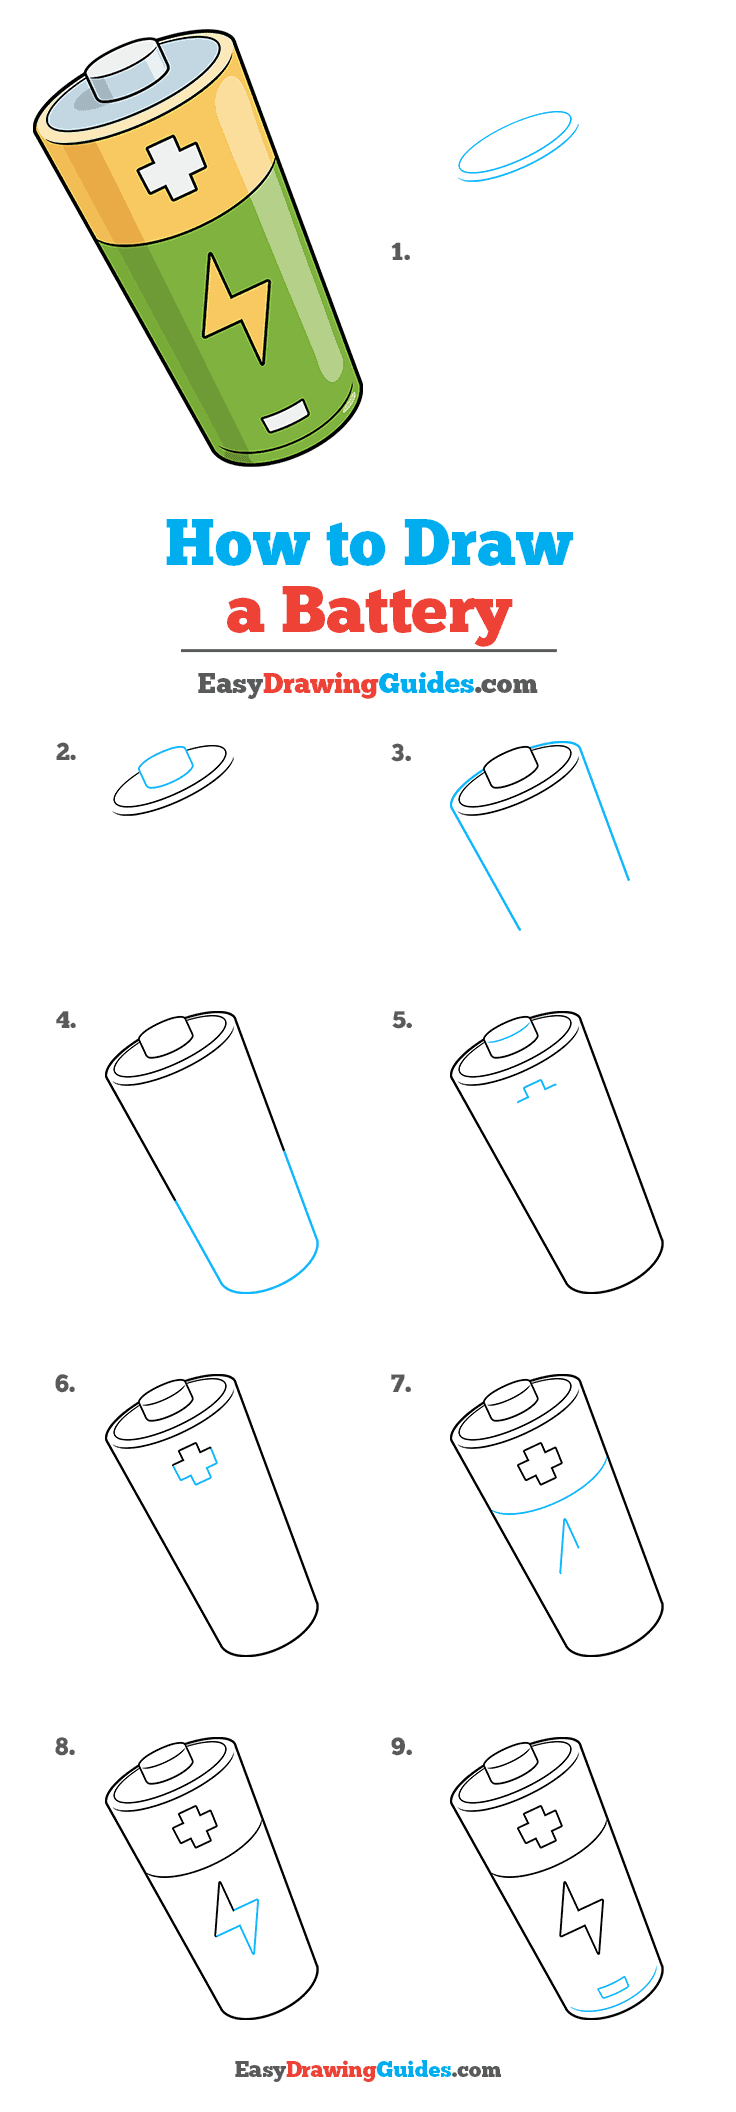 How to Draw Battery